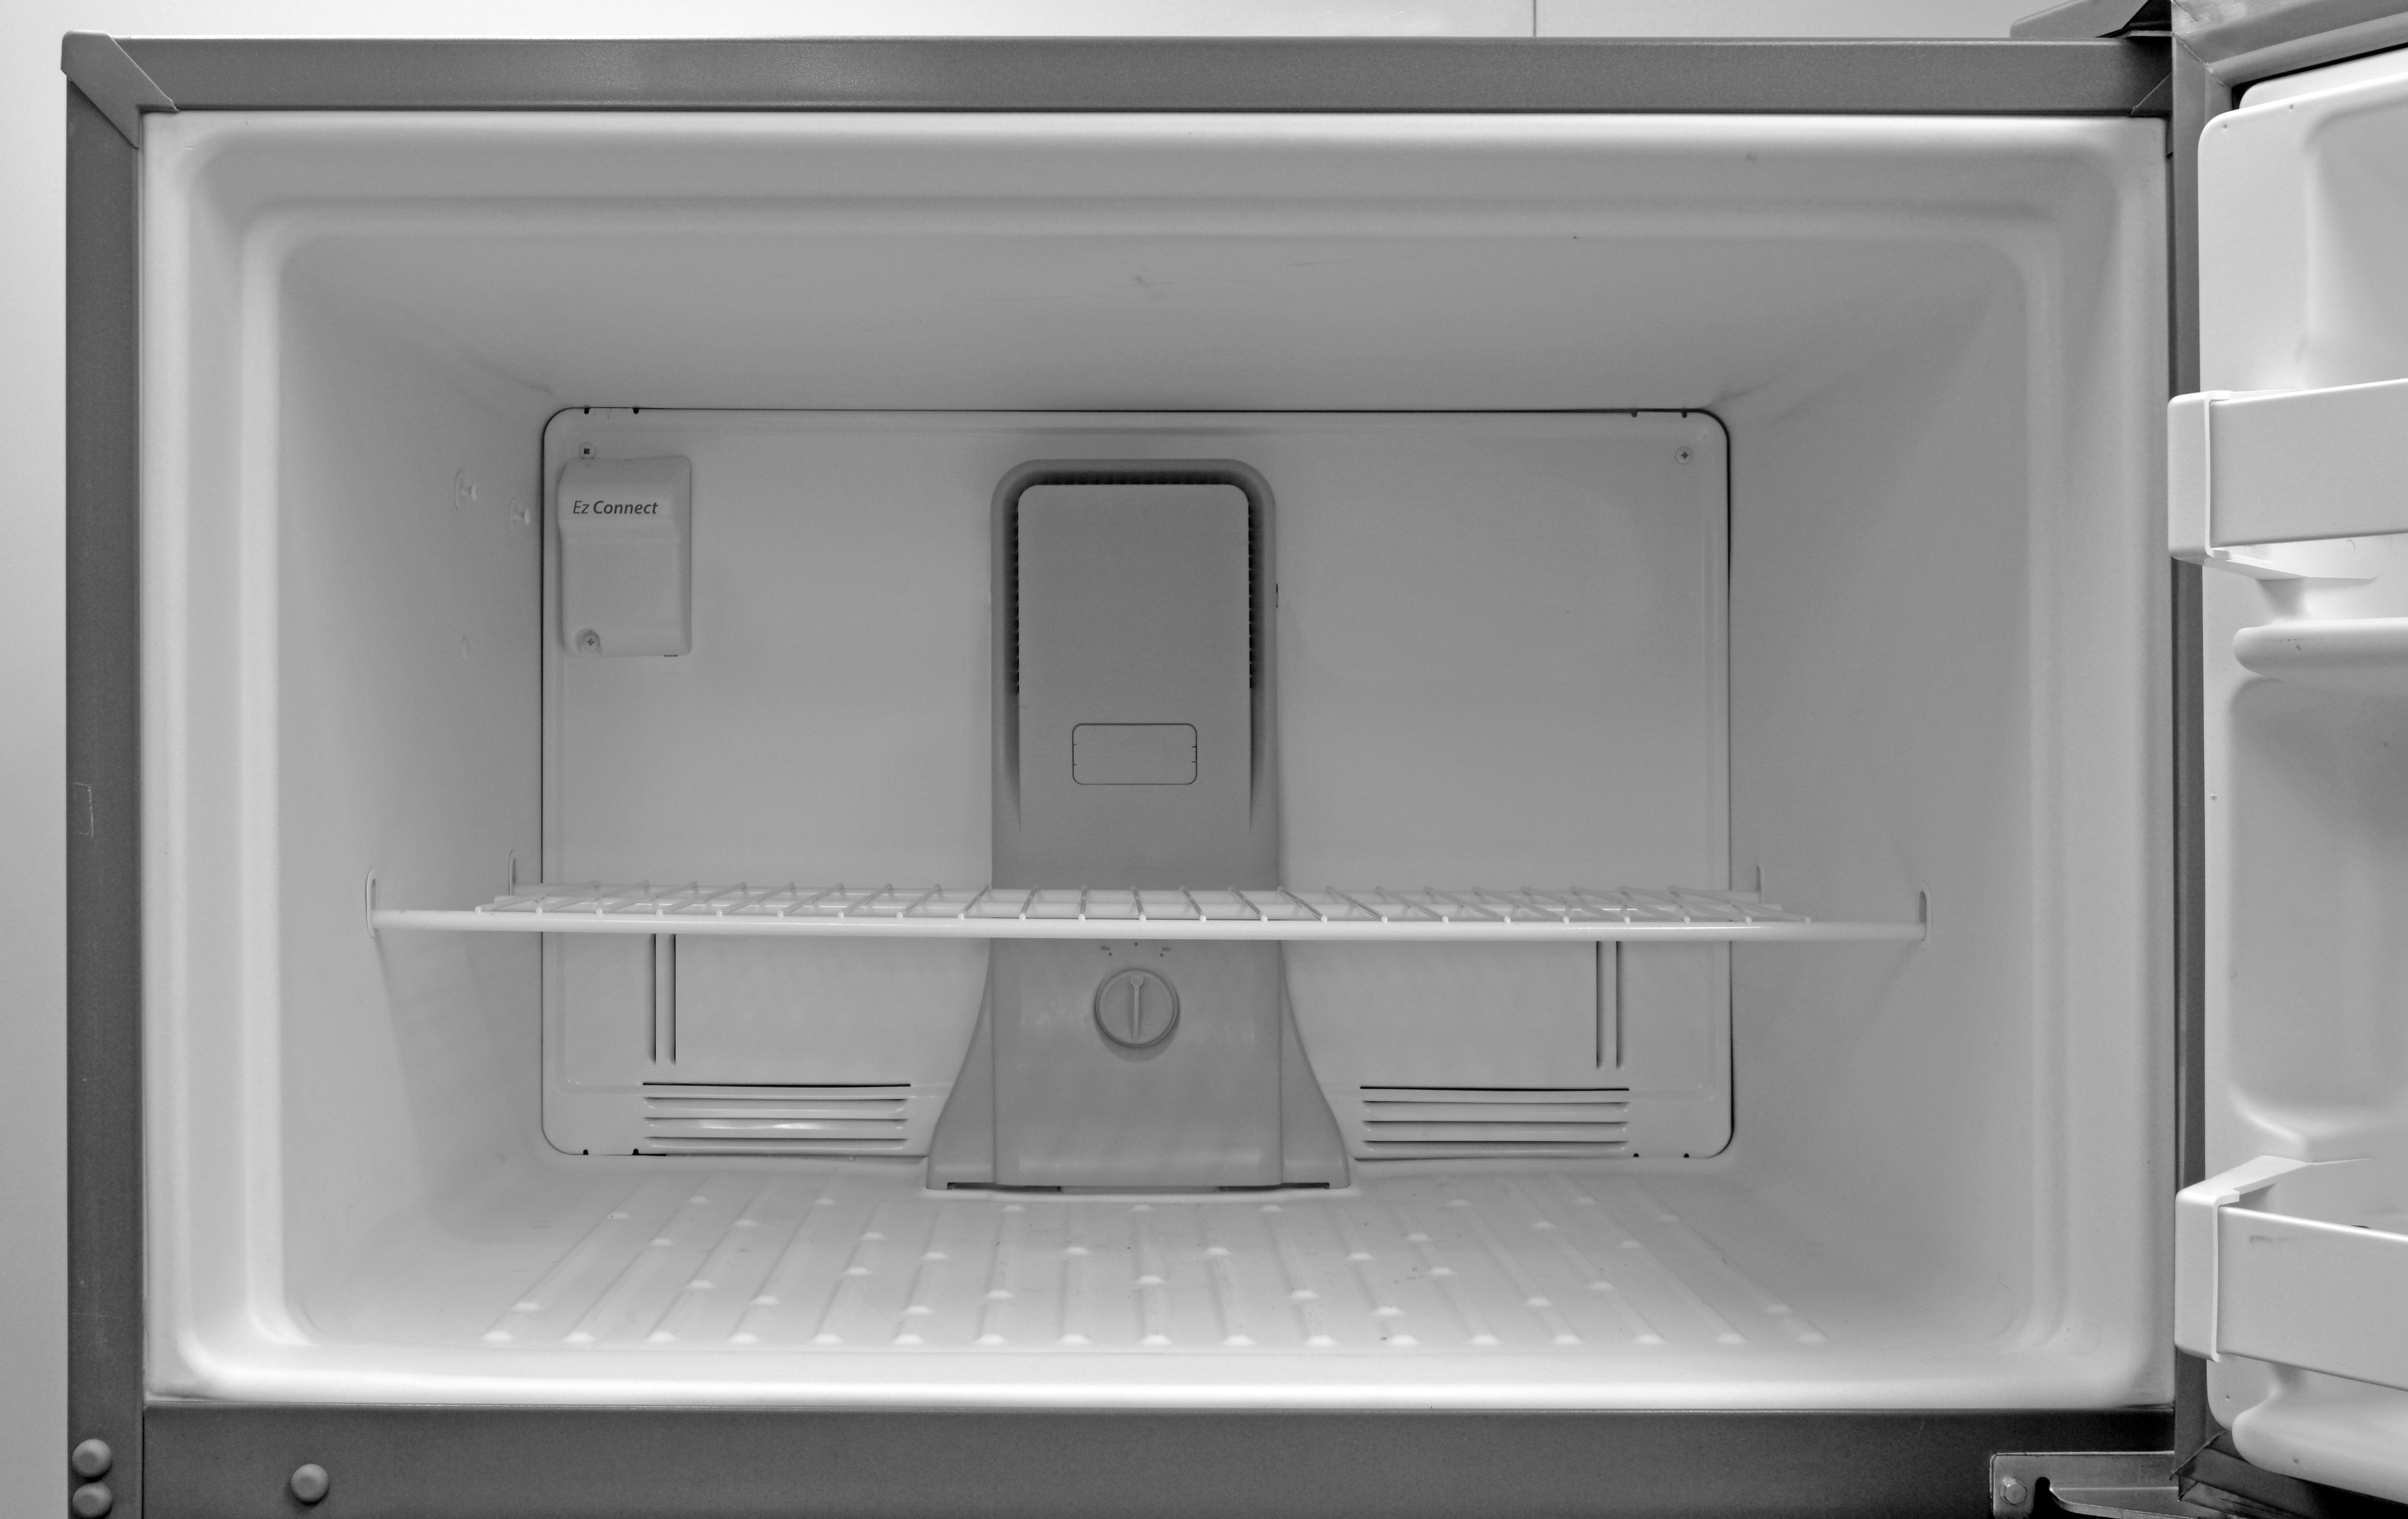 No lights in the Whirlpool WRT311FZDM's freezer, plus the shelf is made of wire. Ah, well, can't win 'em all...